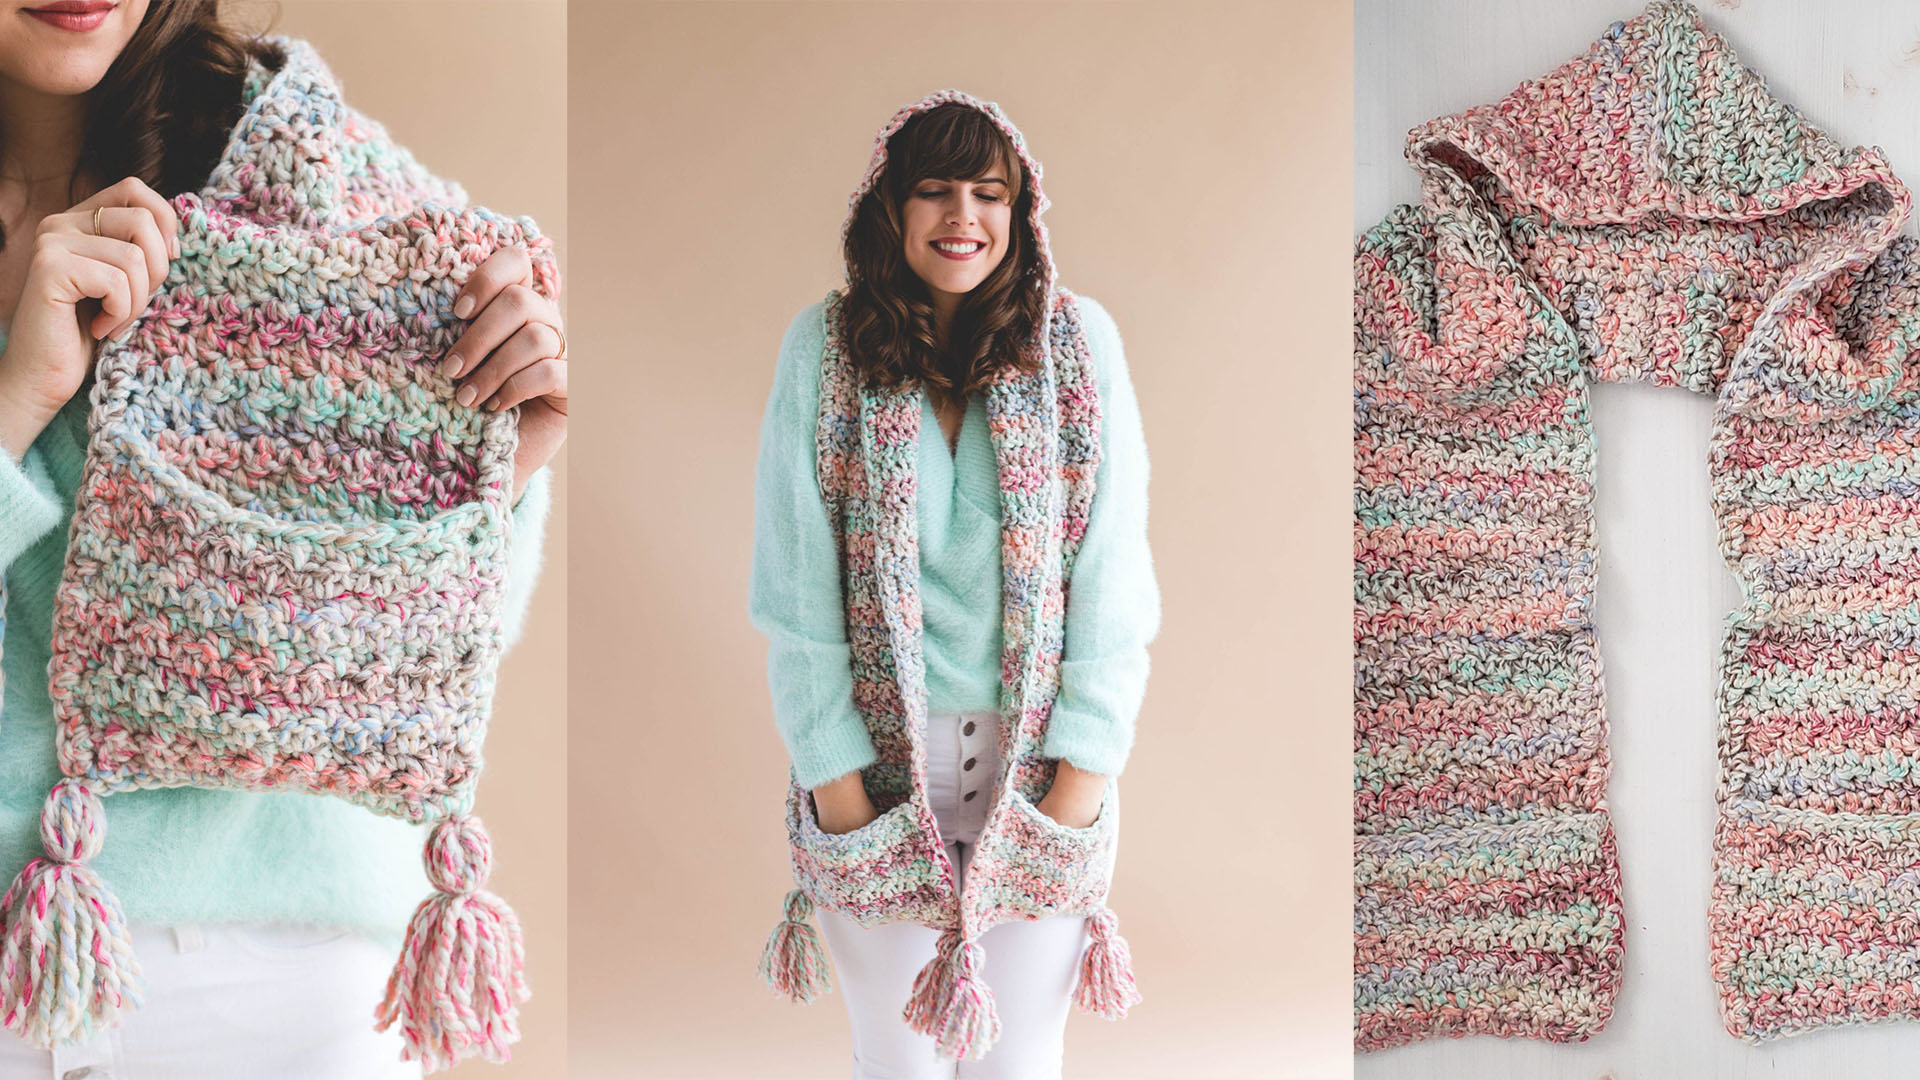 Crochet Storybook Hooded Scarf Free Crochet Pattern Tutorials The Crochet Space